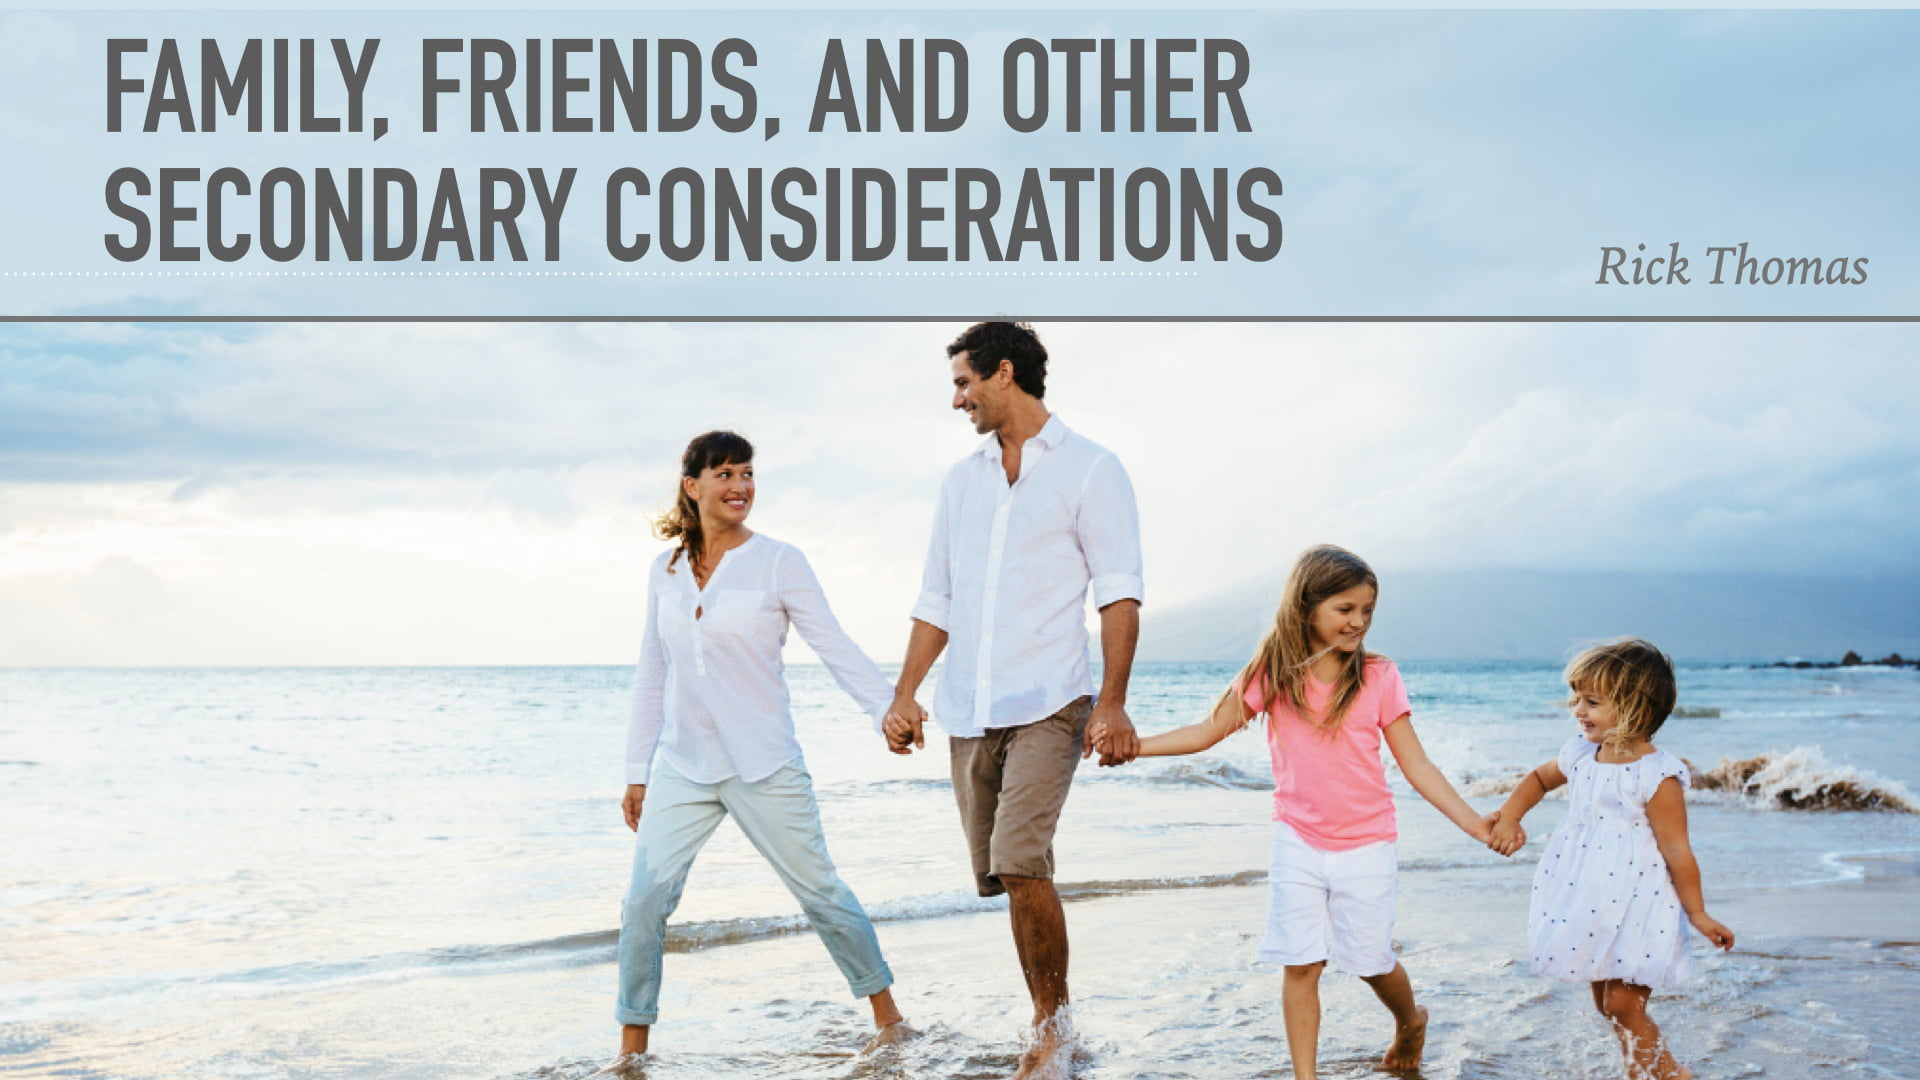 Your Wife, Your Children, and Other Secondary Considerations